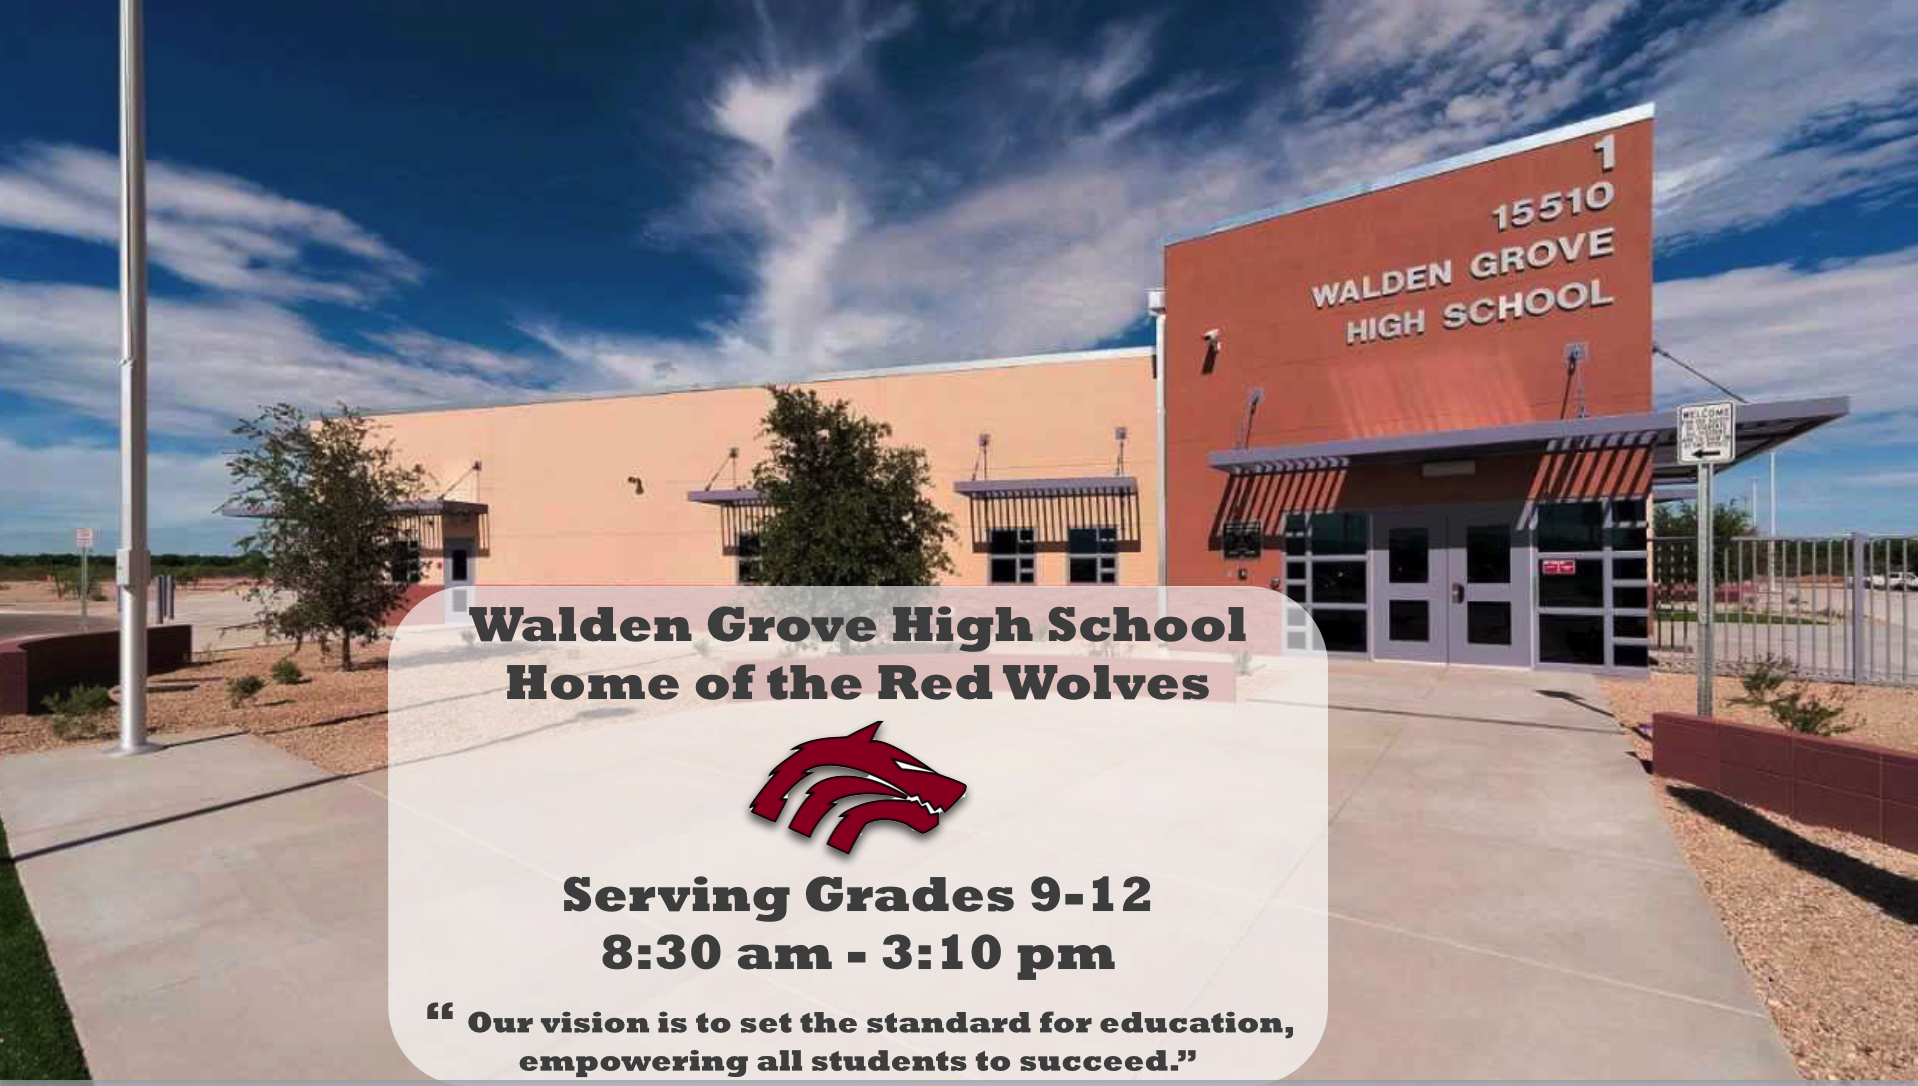 Walden Grove High School